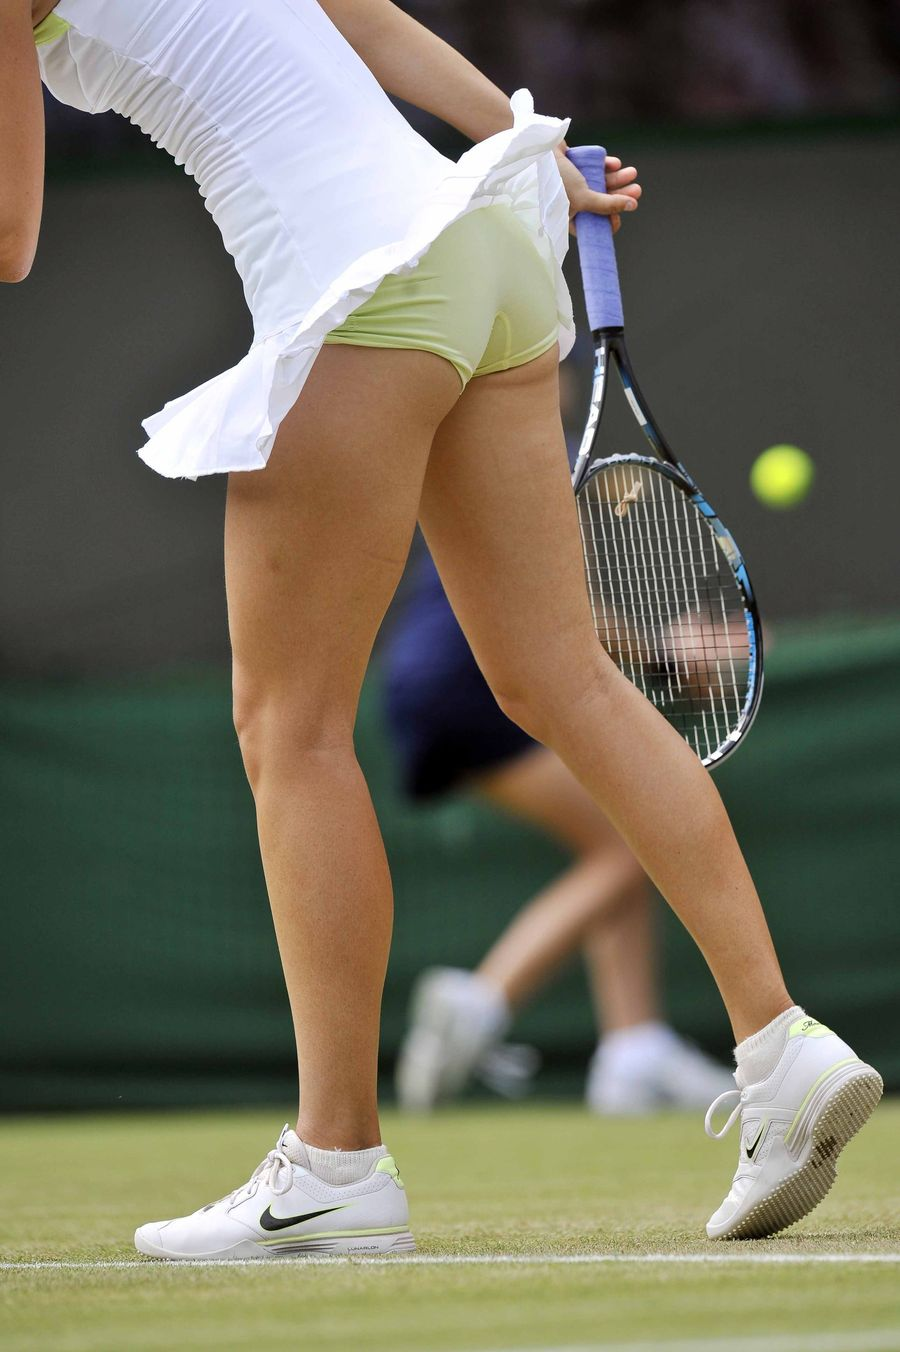 Young tennis players upskirt pic — pic 9